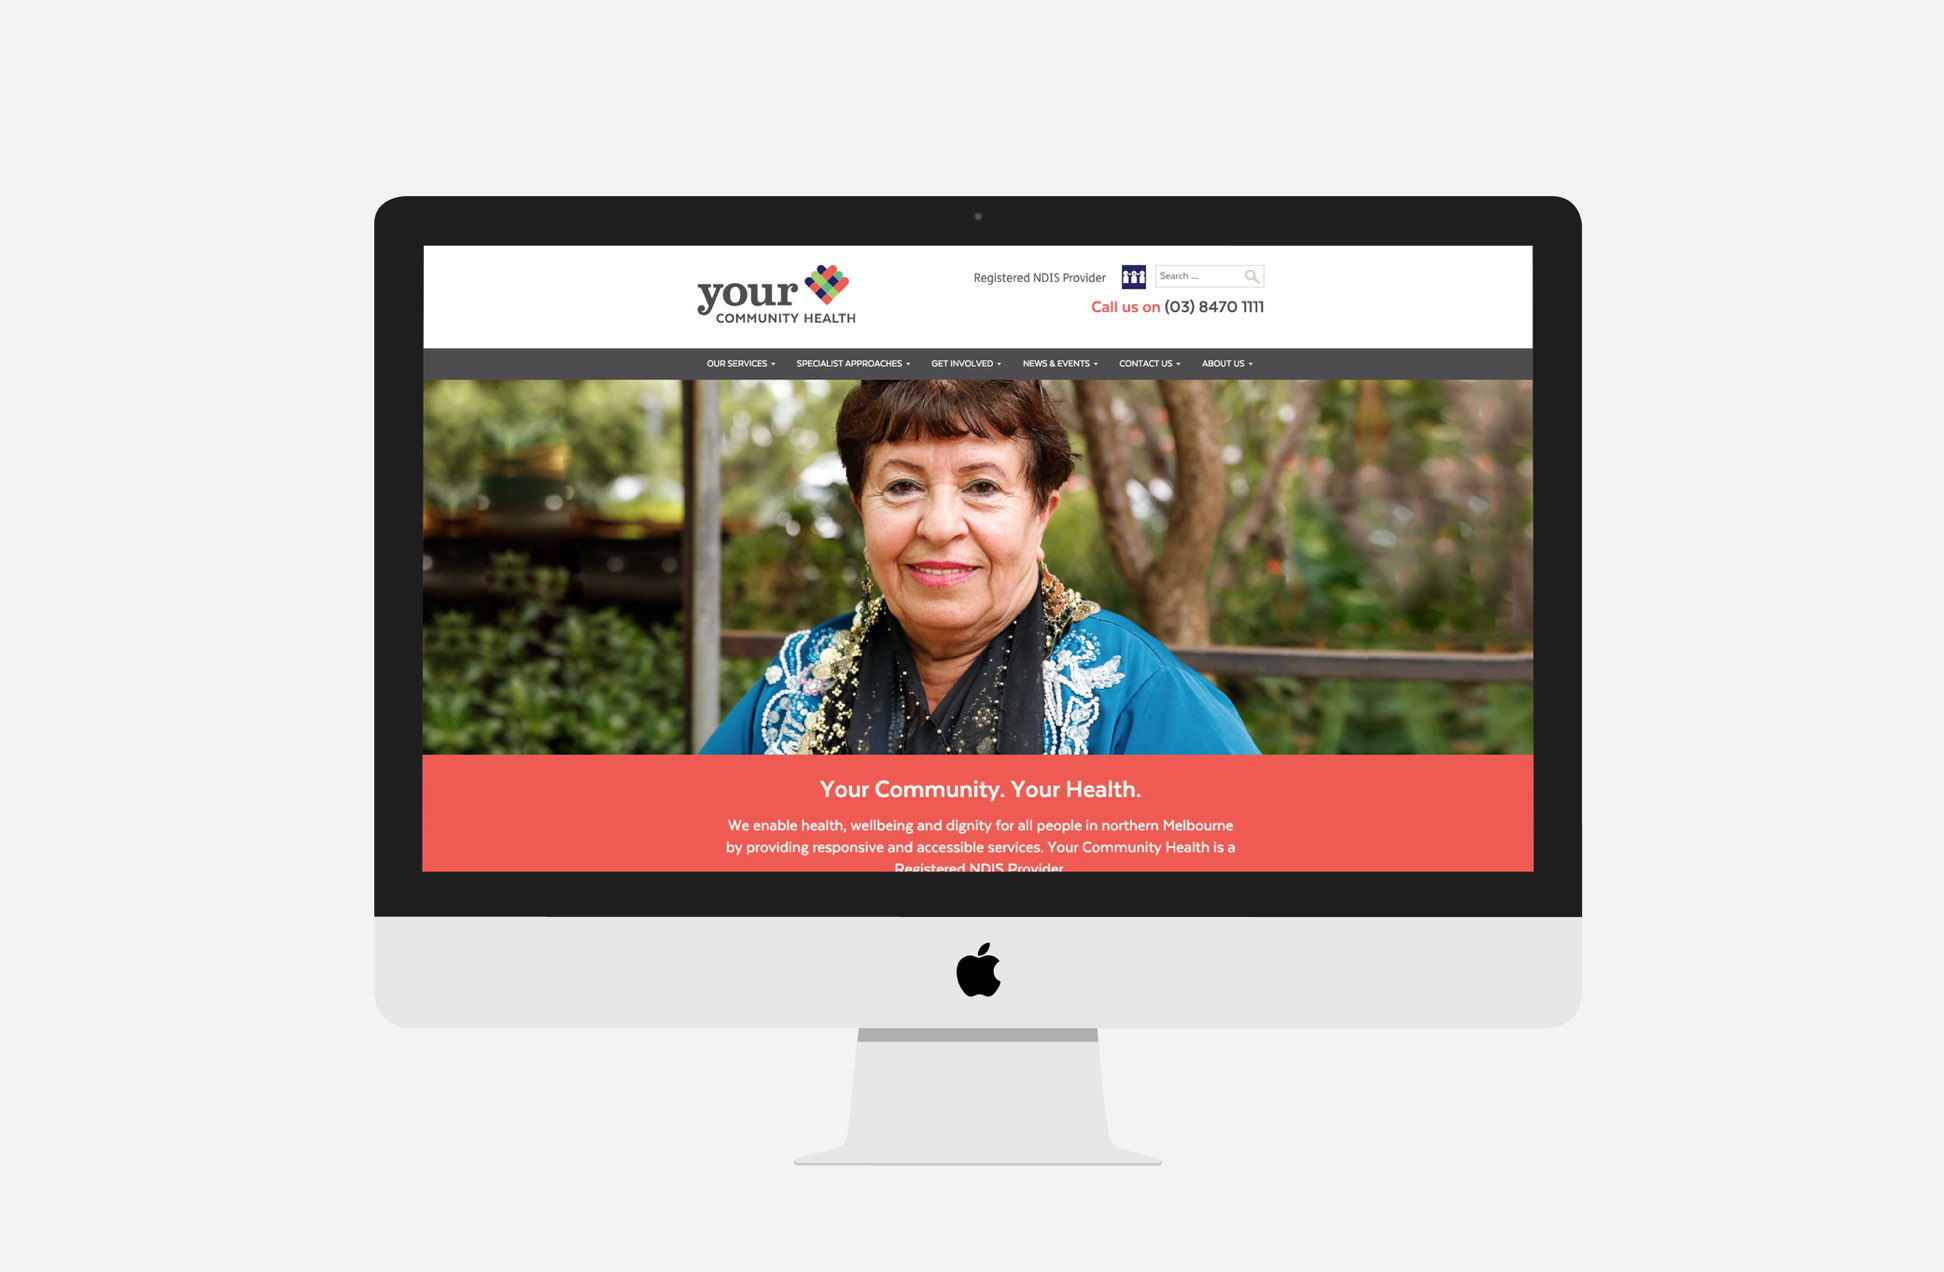 Your Community Health - home page